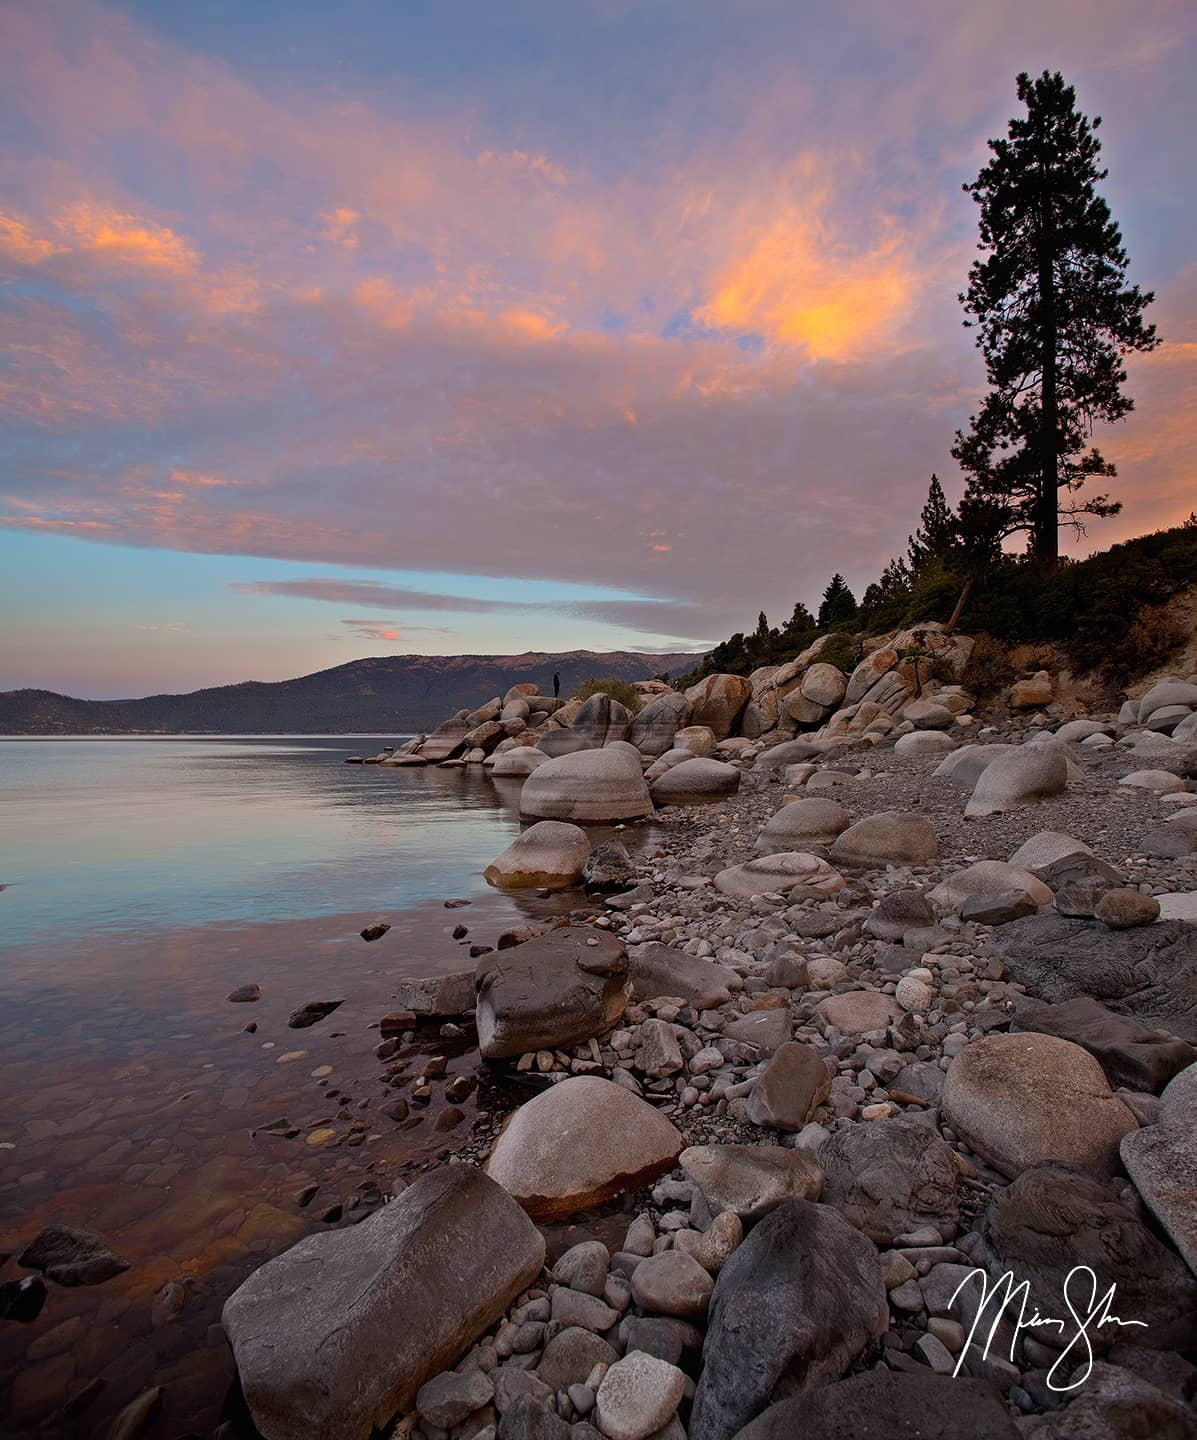 Open edition fine art print of Lake Tahoe Vertical Panorama from Mickey Shannon Photography. Location: Lake Tahoe, Nevada